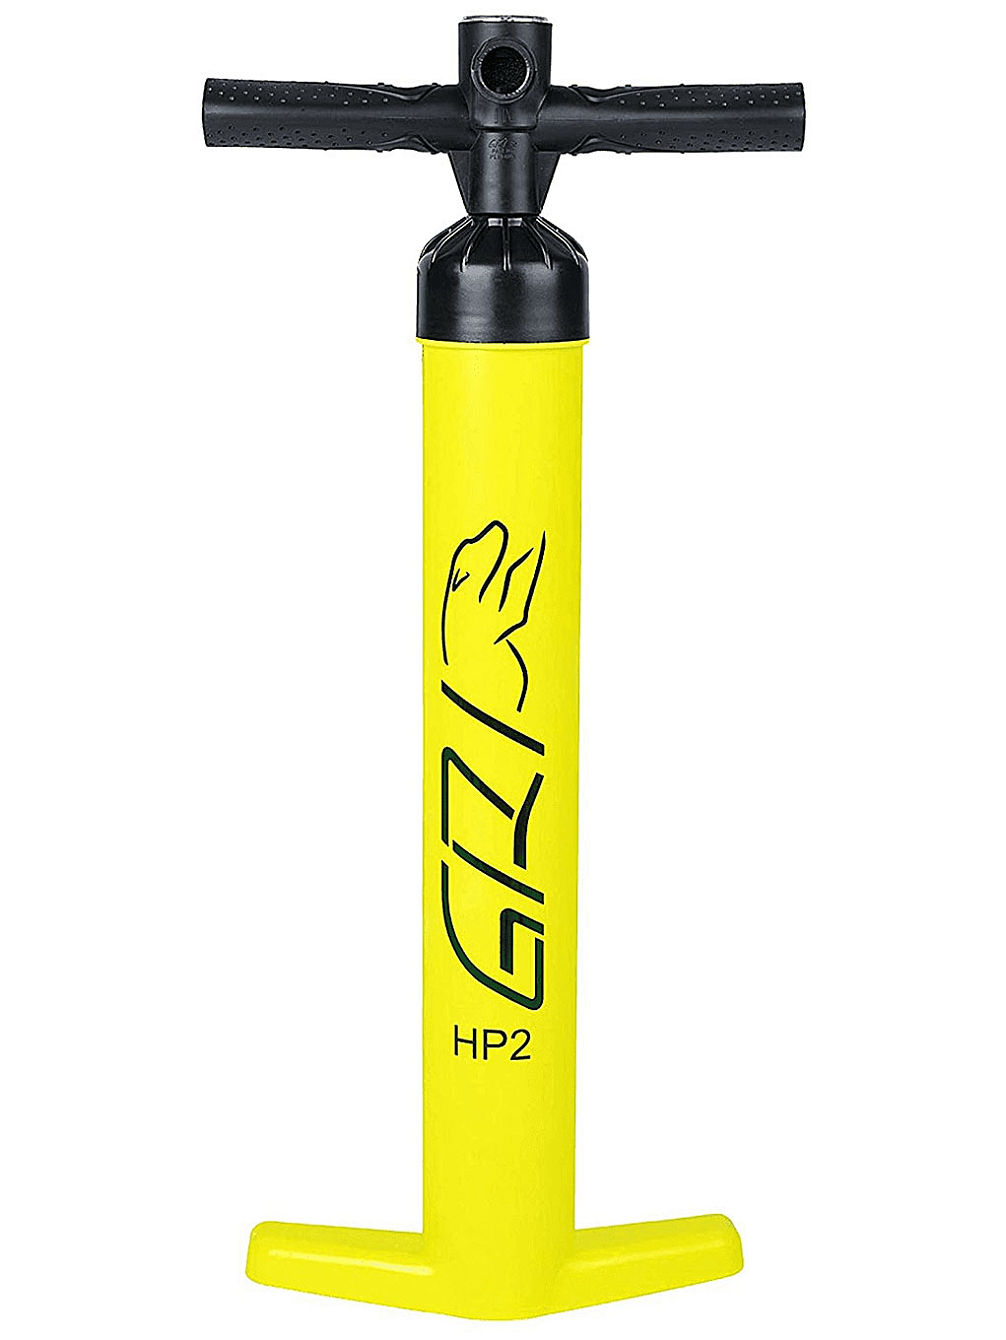 Gri Hp2 Double Action Pump